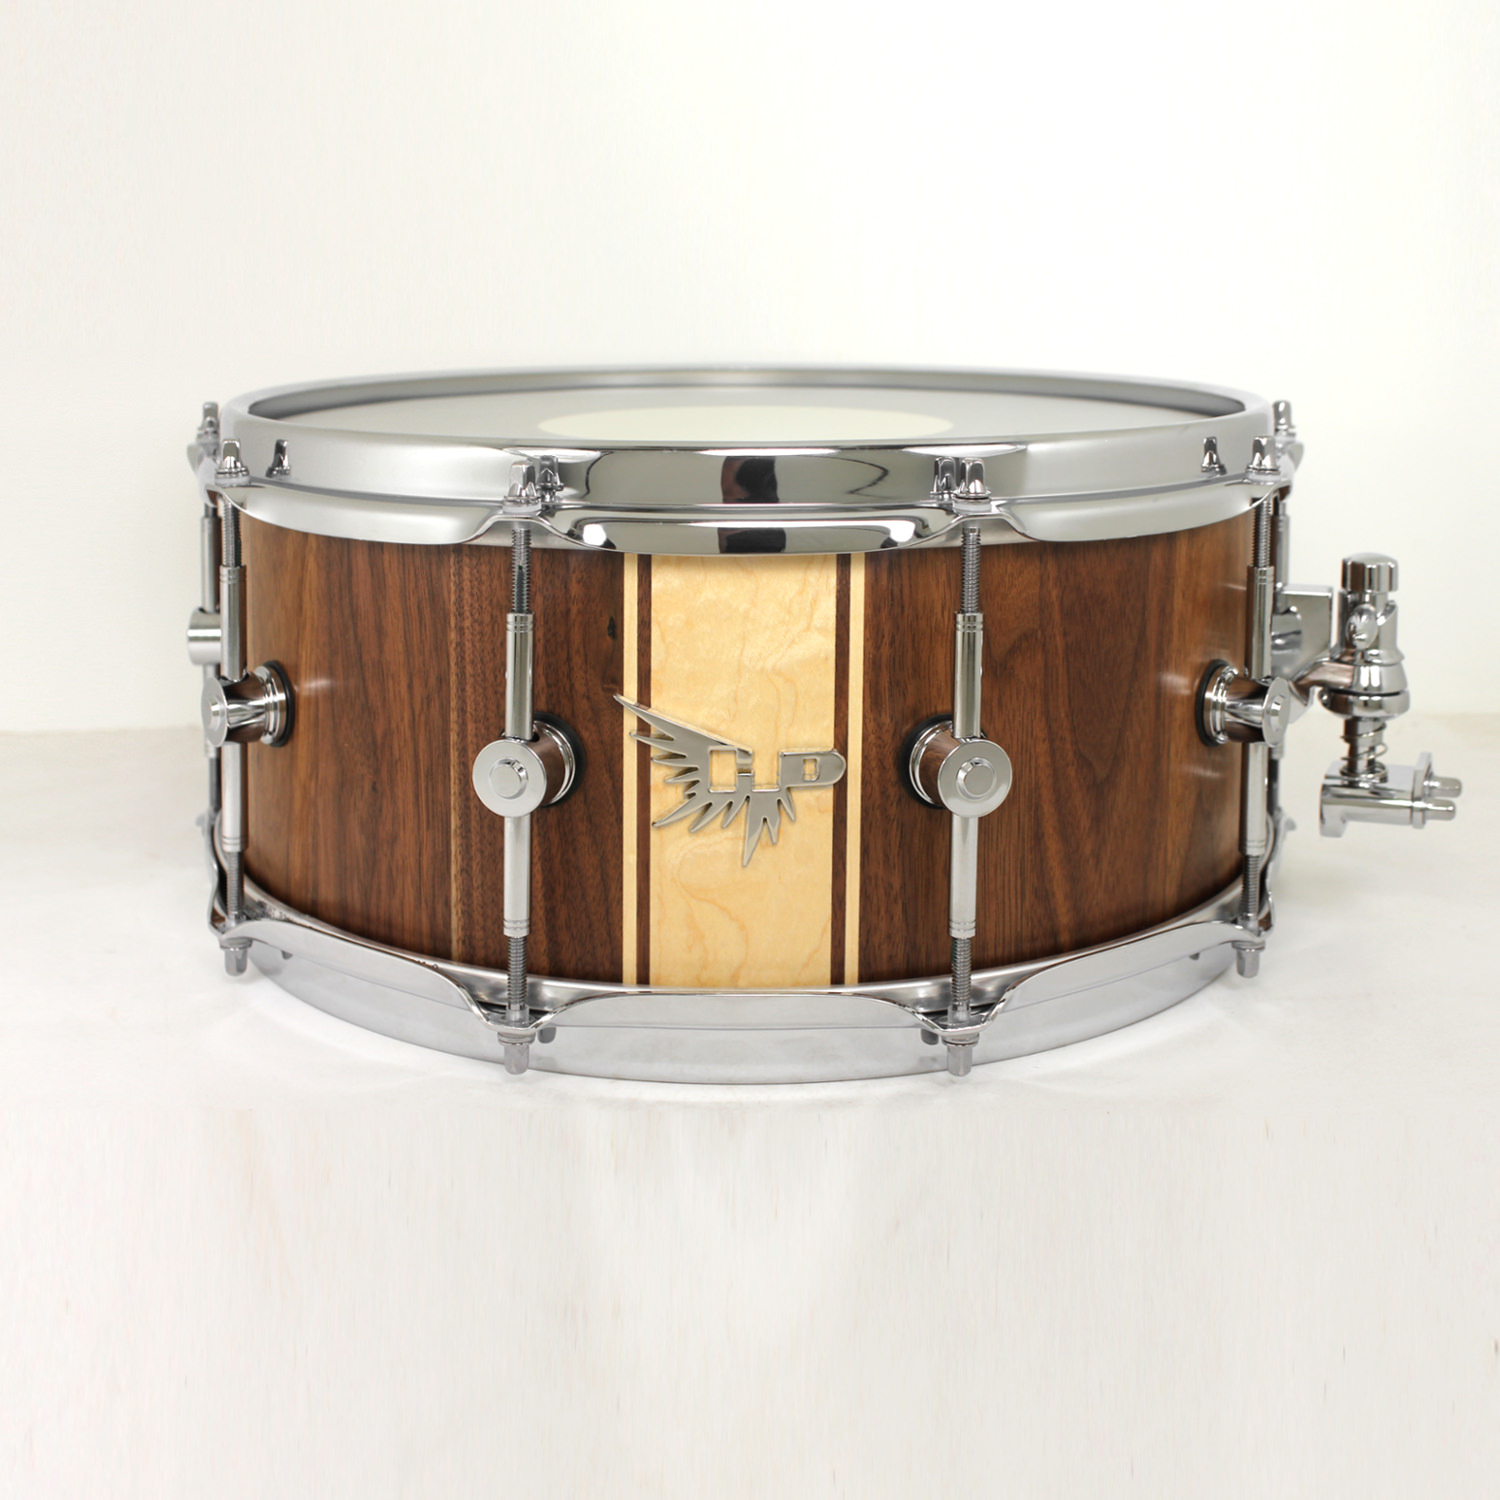 Maple Walnut Snare Drum HD Stave Hendrix Drums S-hoop Dunnett